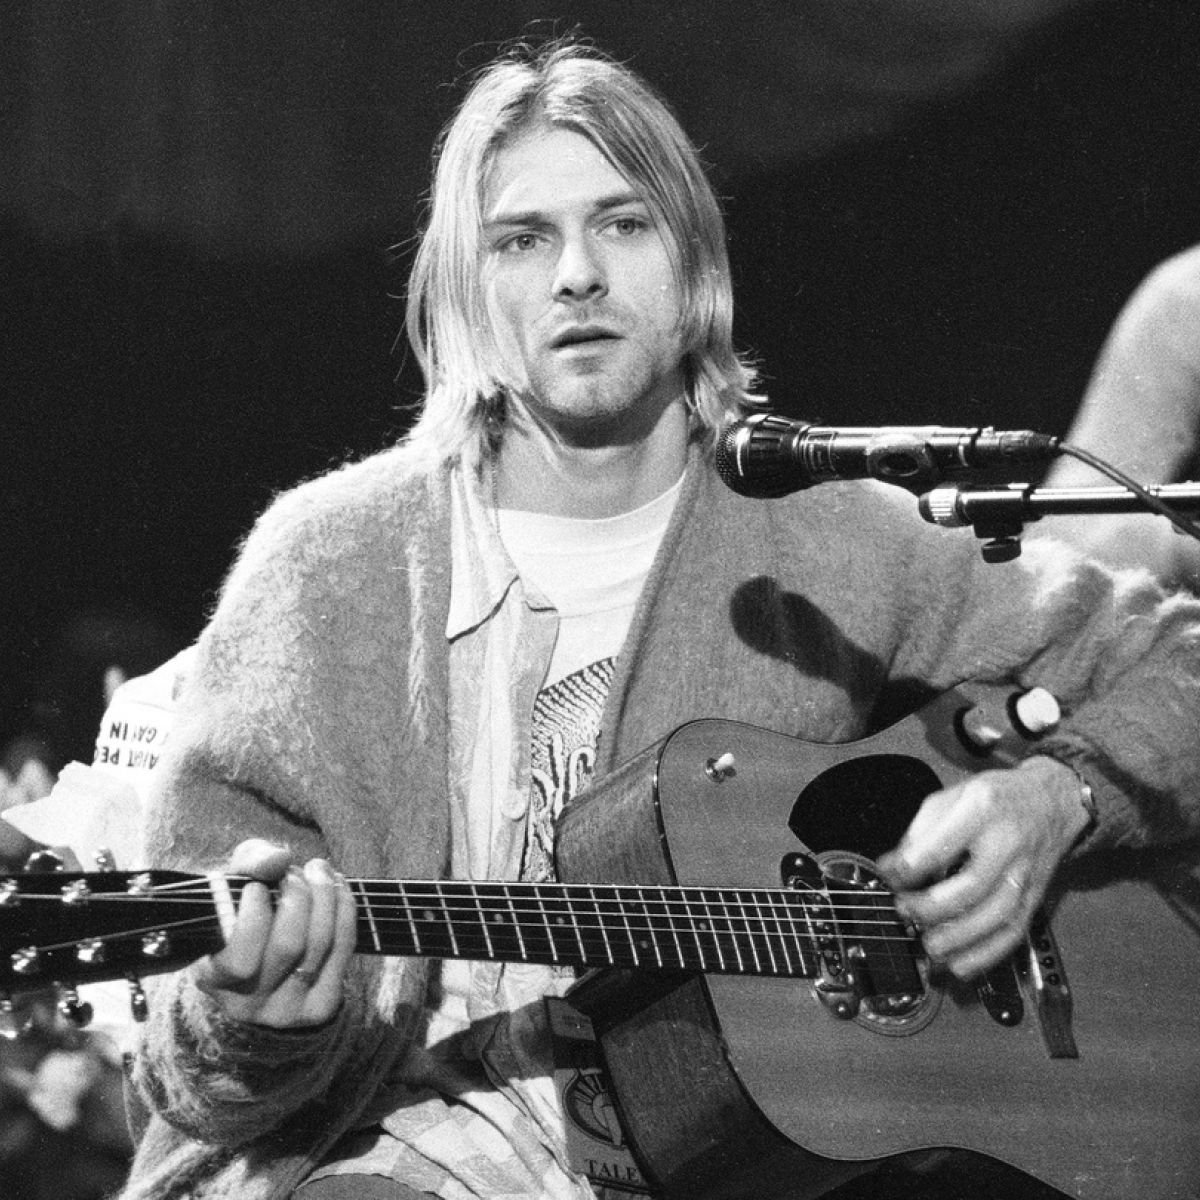 Kurt Cobain's private possessions to go on display in Kildare